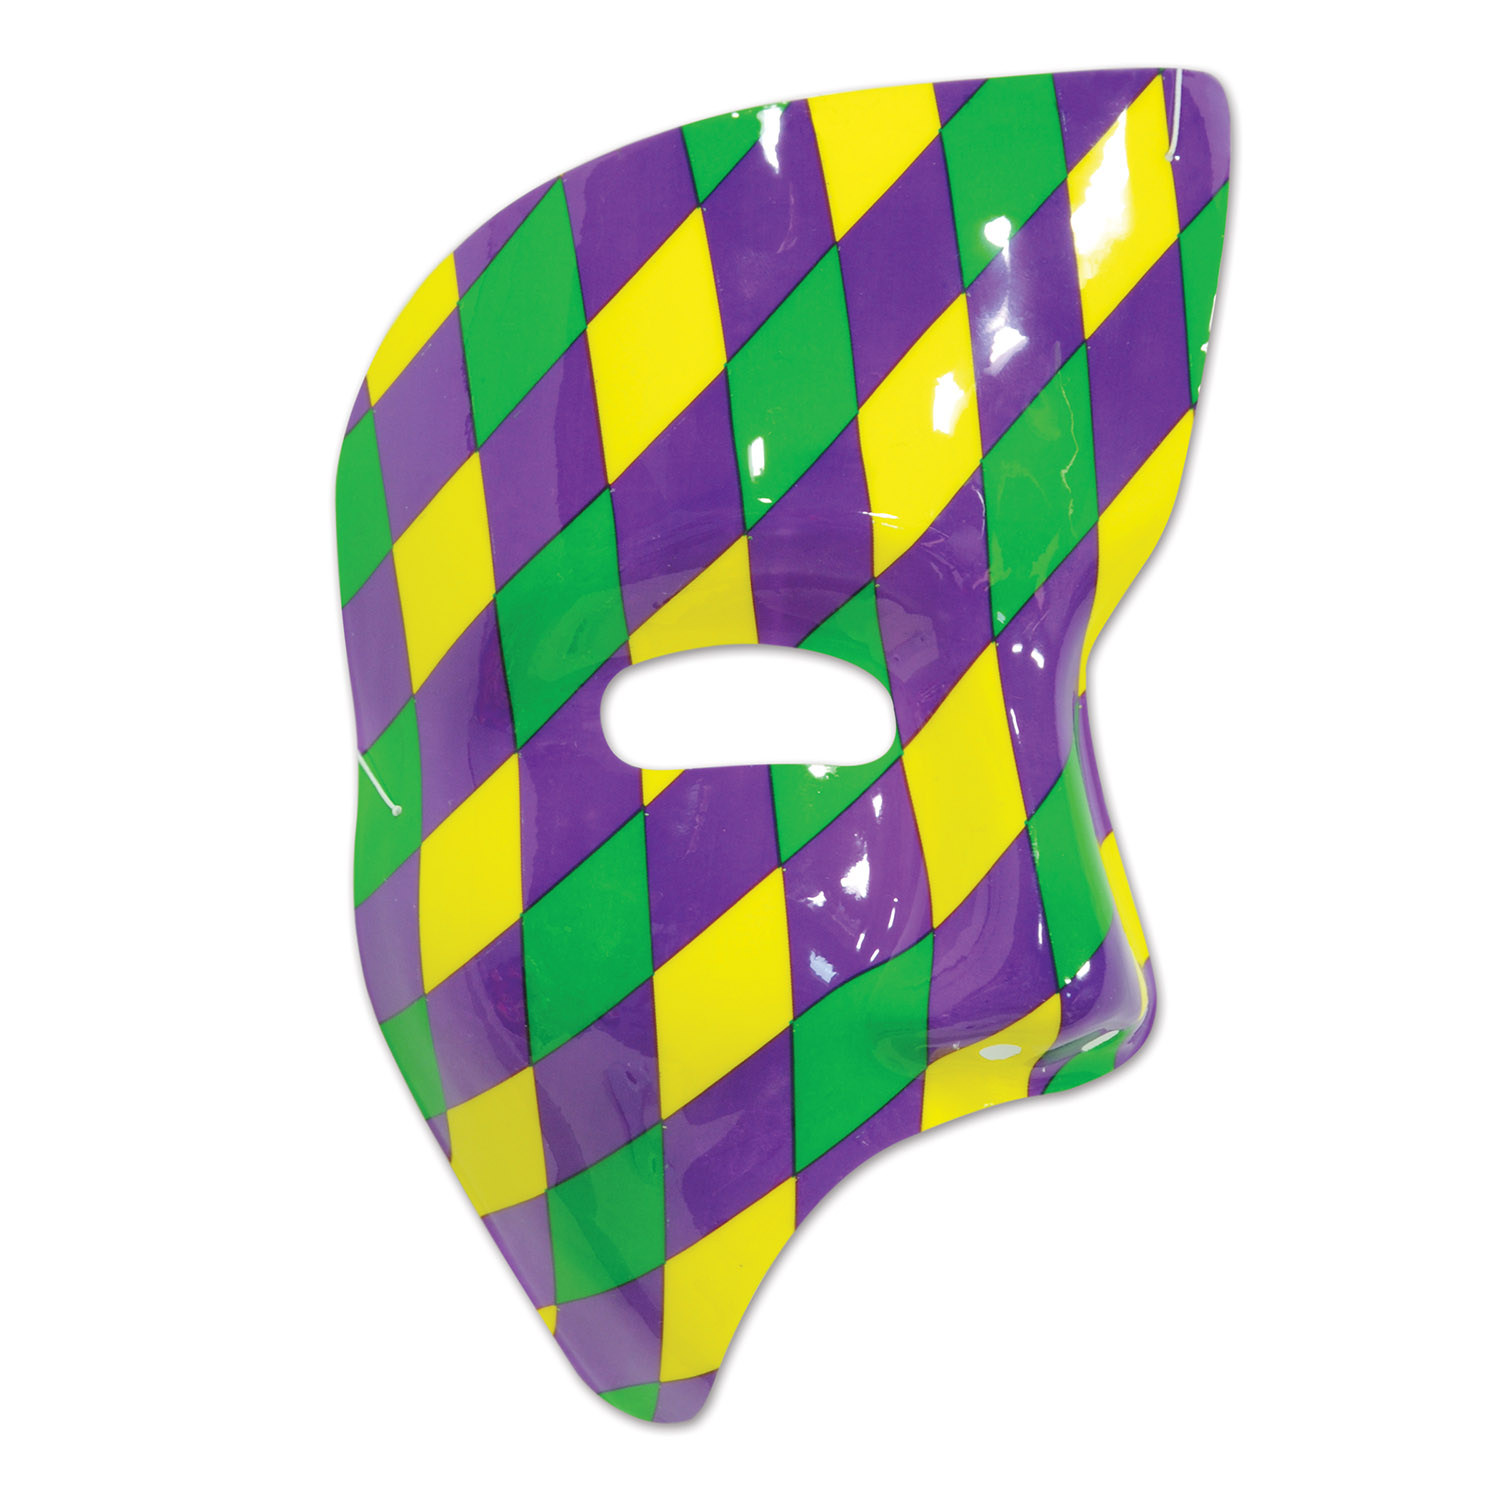 Phantom Mask (Pack of 24) Phantom Mask, Harlequin Design, Mardi Gras ideas, Green Purple Yellow, Plastic Mask, Novelty party favors, Fat Tuesday wearables, Half Mask, New Years Eve, Cheap Party supplies, Inexpensive half mask